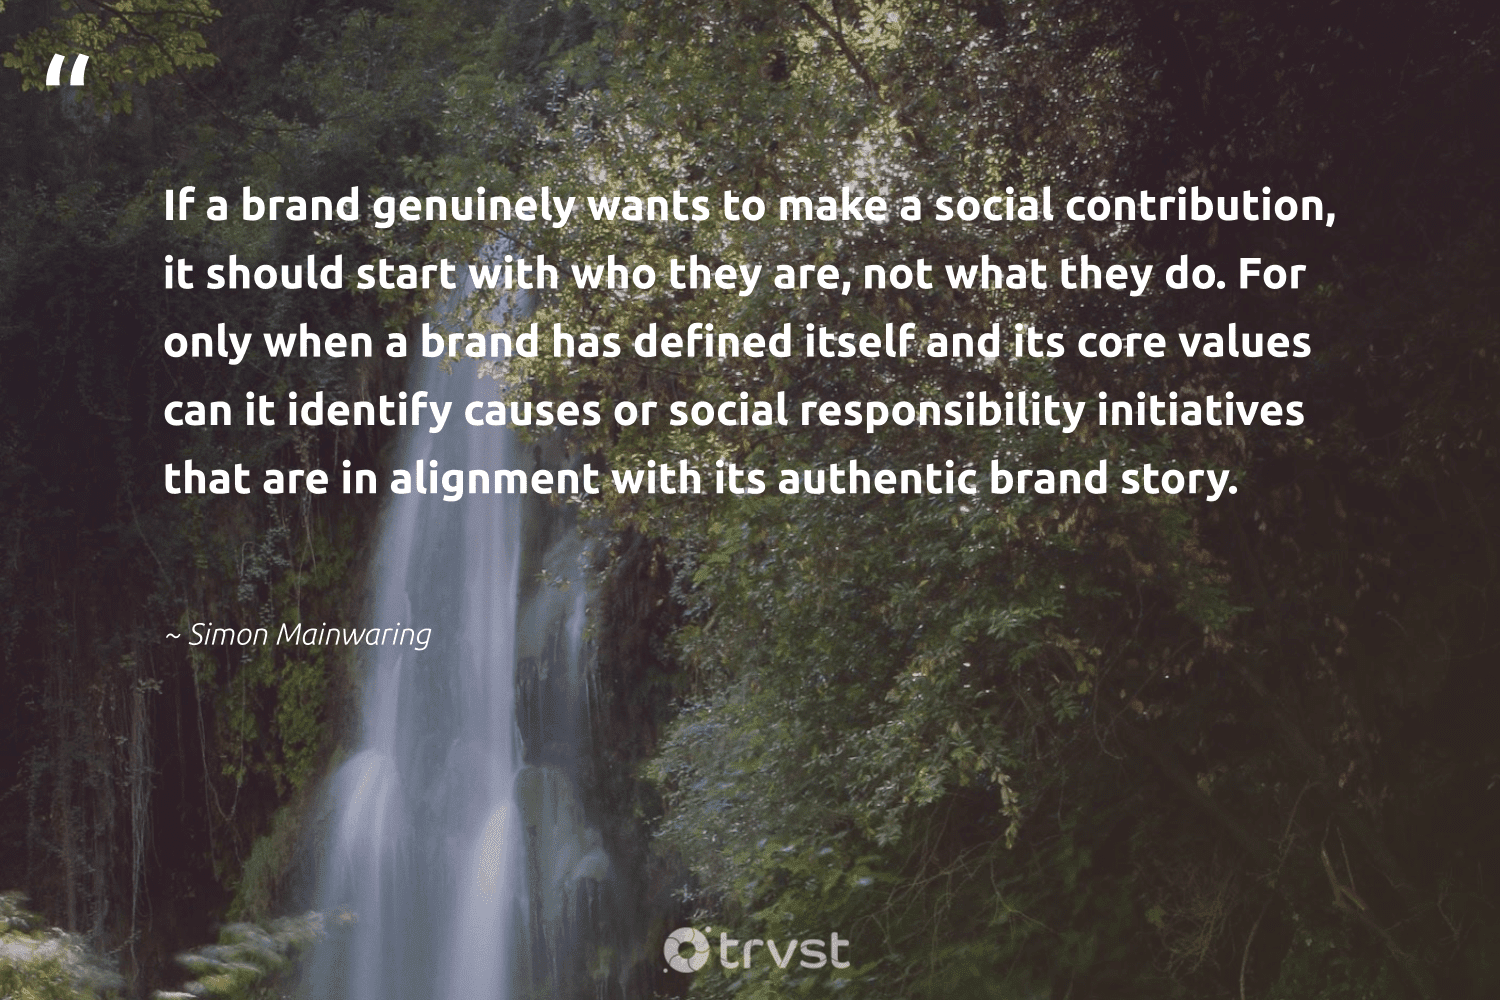 """""""If a brand genuinely wants to make a social contribution, it should start with who they are, not what they do. For only when a brand has defined itself and its core values can it identify causes or social responsibility initiatives that are in alignment with its authentic brand story.""""  - Simon Mainwaring #trvst #quotes #causes #Charity #socialchange #society #socialimpact #nonprofit #betterplanet #weareallone #ecoconscious #nonprofitorganization"""